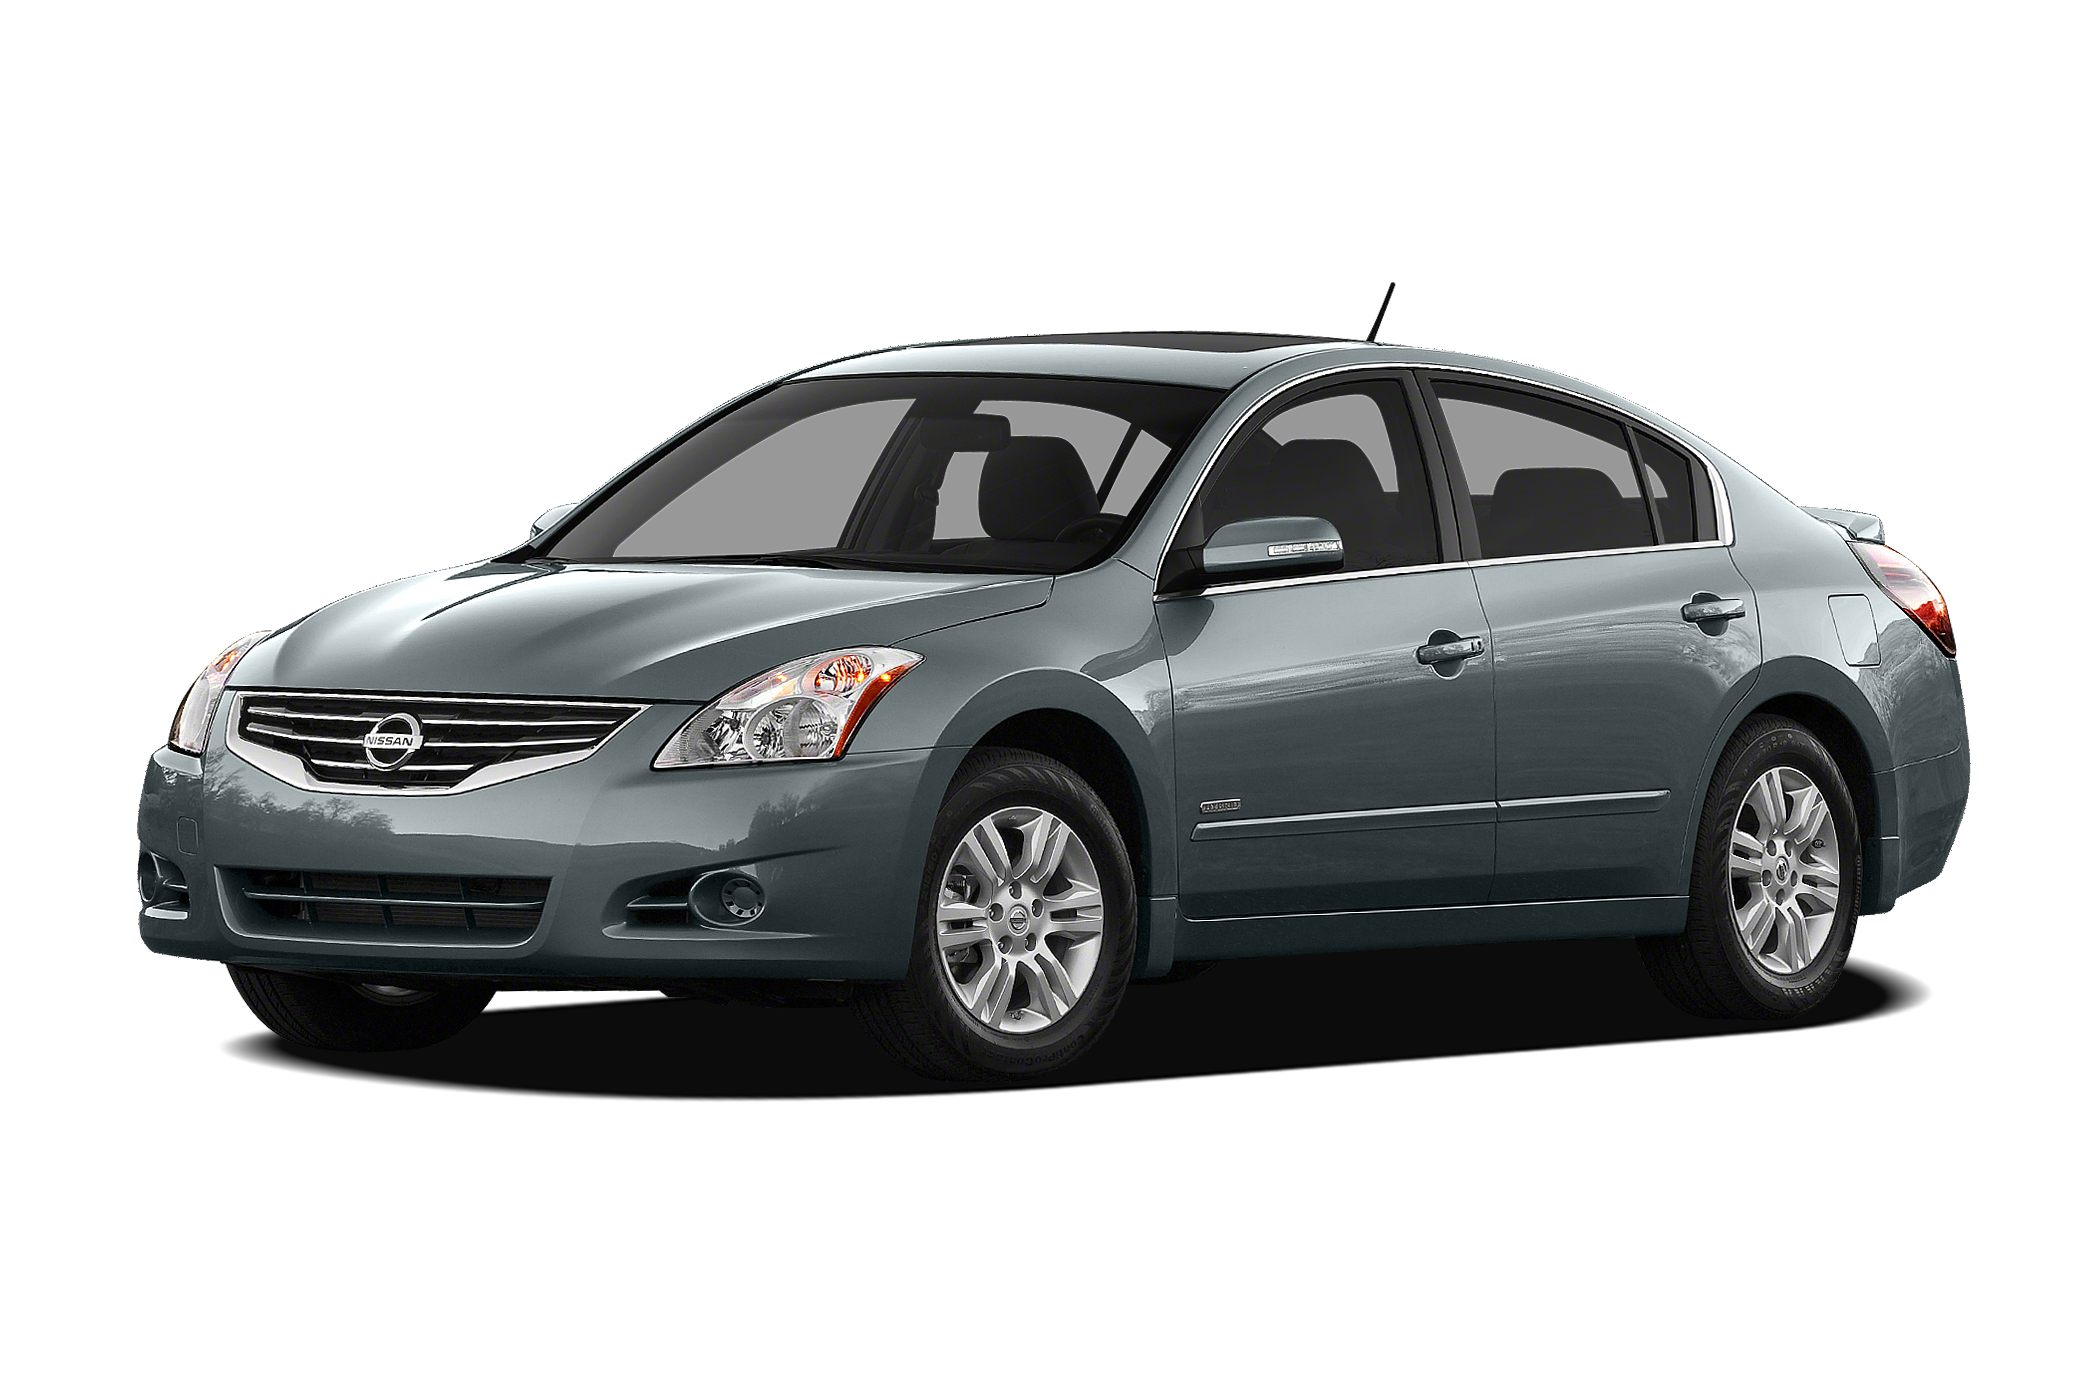 2011 Nissan Altima Hybrid Base Sedan for sale in Bronx for $10,495 with 91,330 miles.